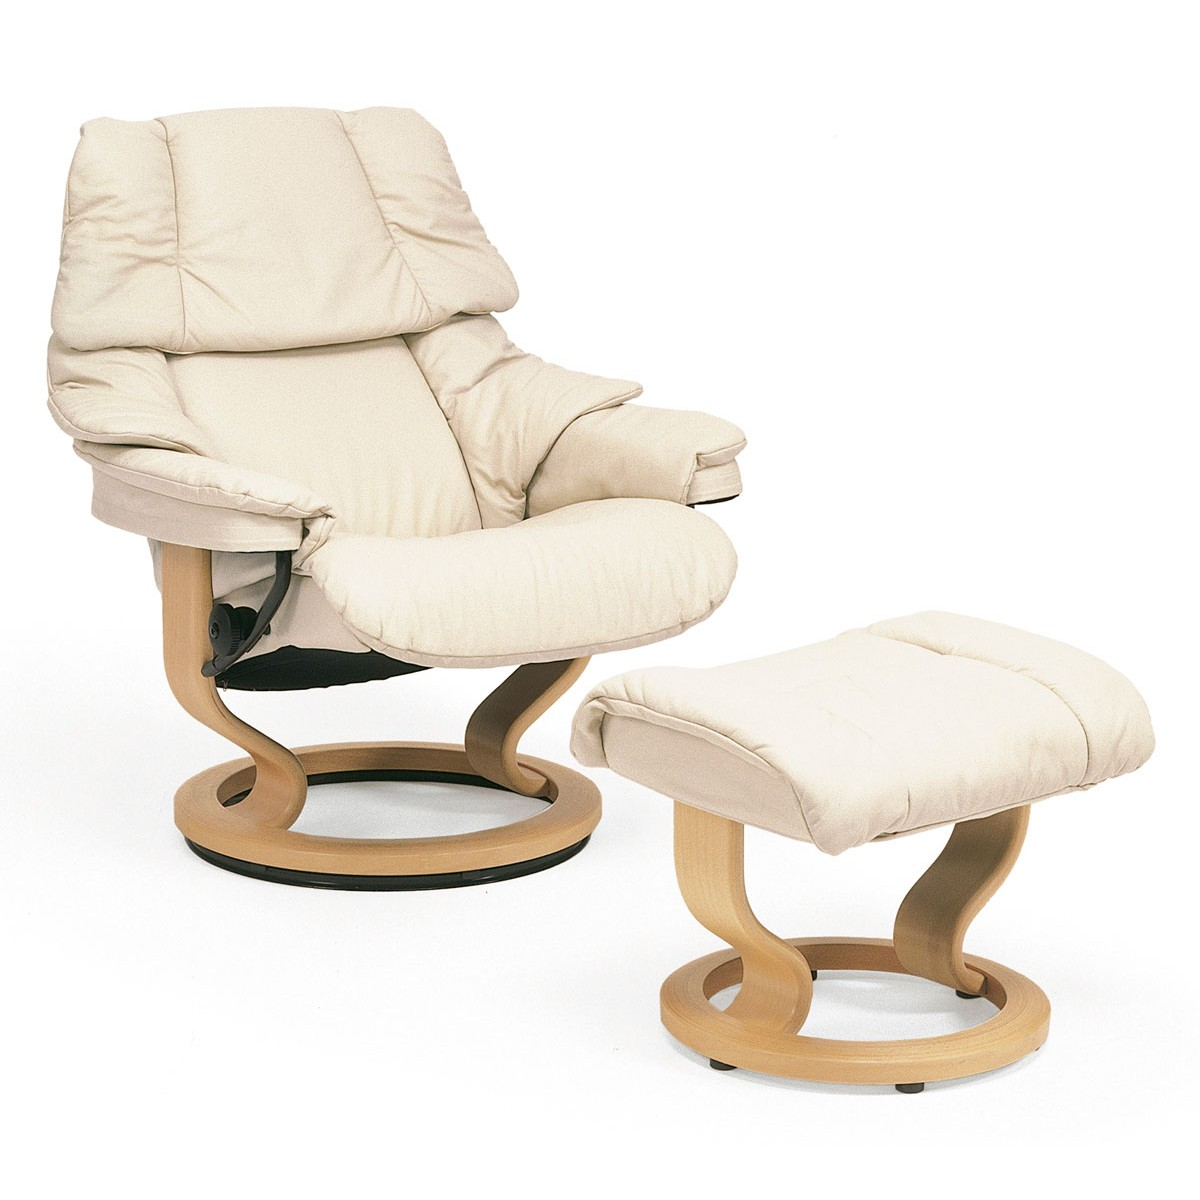 Stressless Reno M Stressless Reno Medium Recliner And Ottoman From 2 895 00